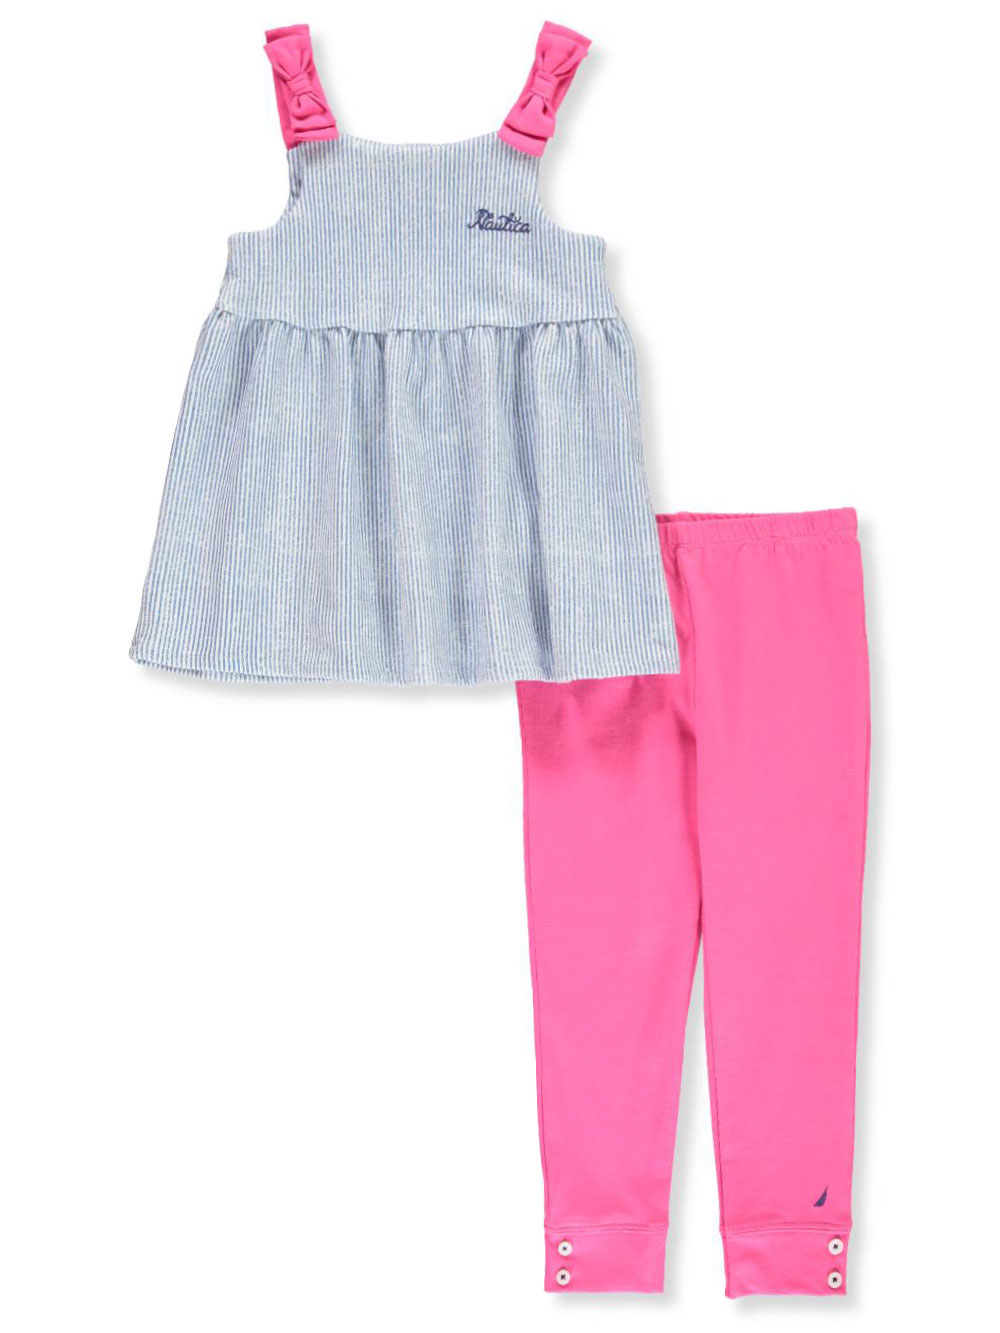 Nautica Infant Toddler Girl/'s Fashion Top with Leggings 2-Piece Set Baby NEW